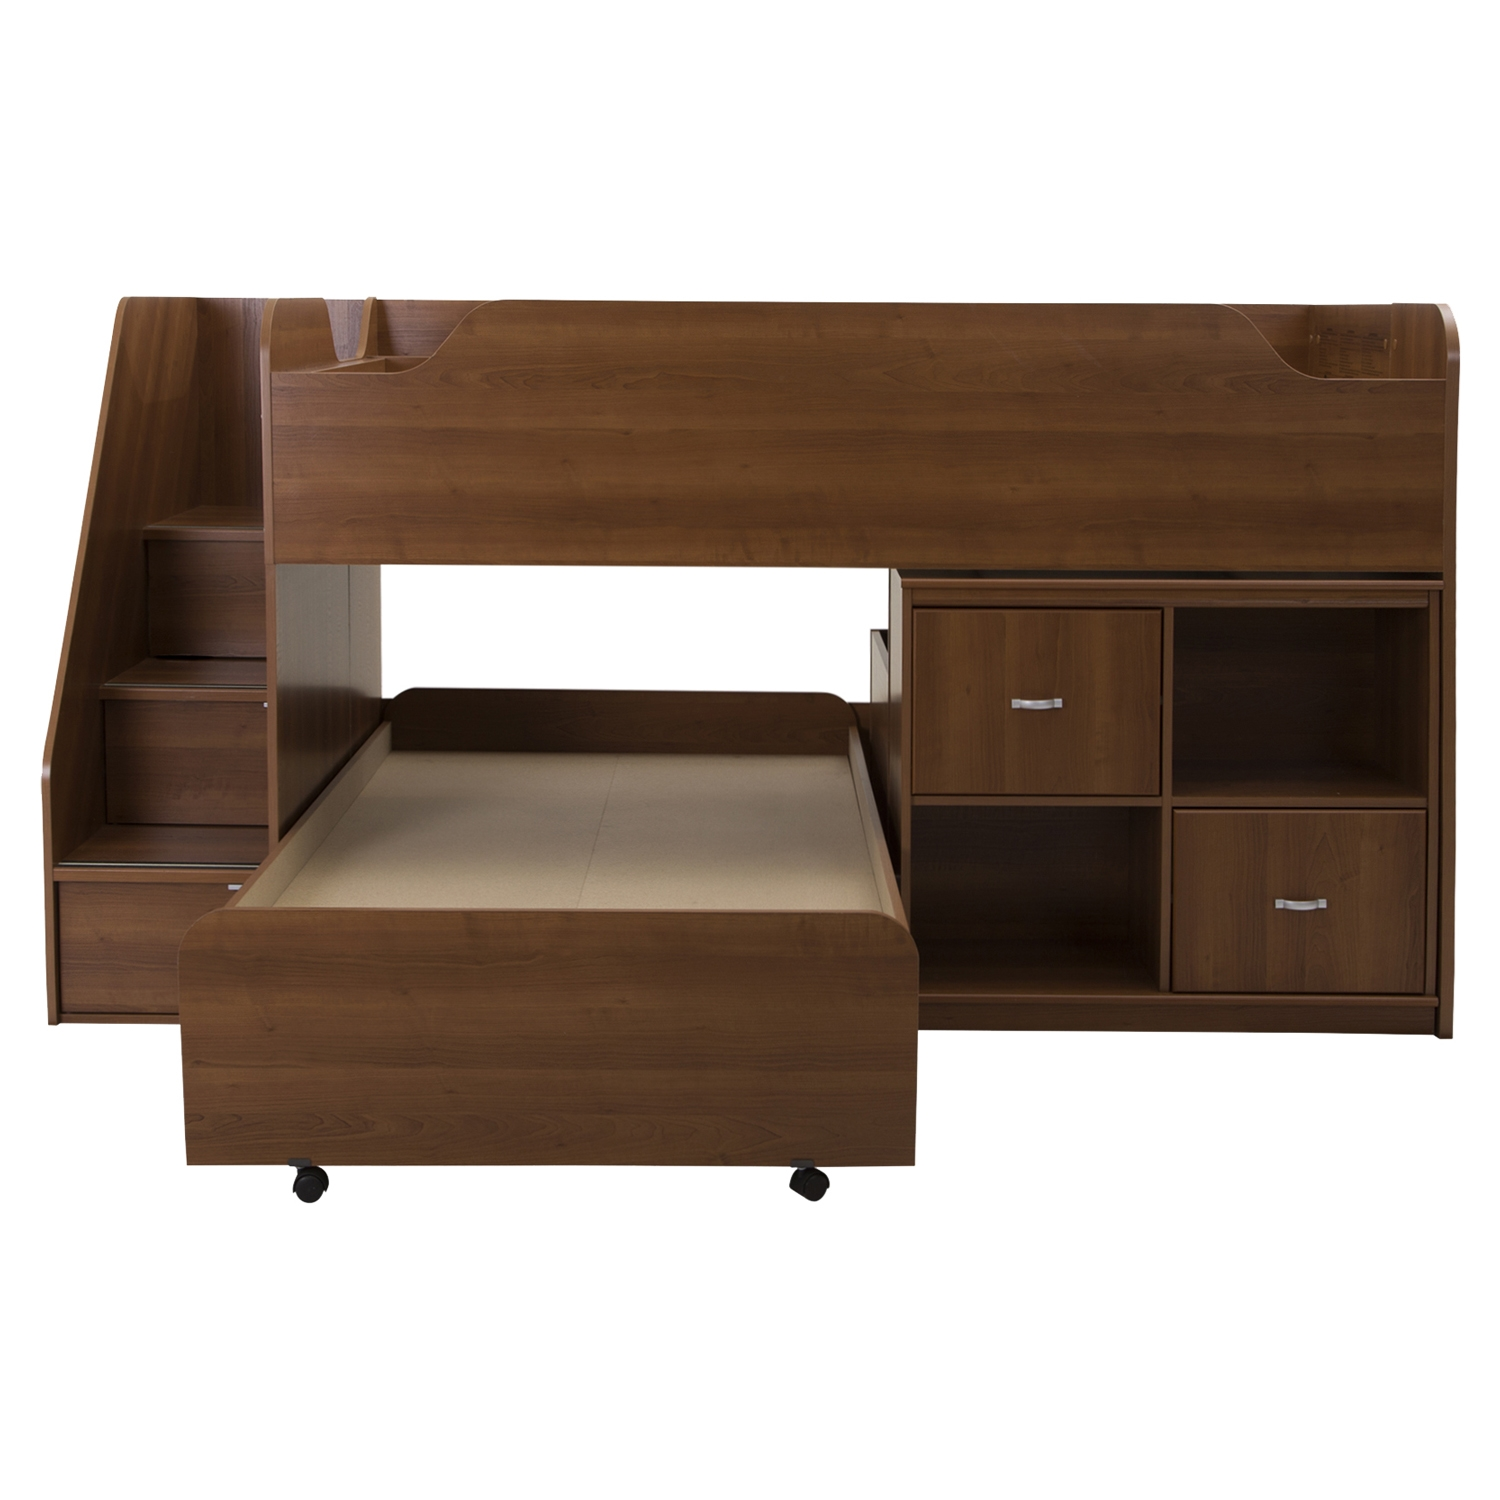 Mobby Twin Loft Bed with Stairs - Trundle, Storage Unit, Morgan Cherry